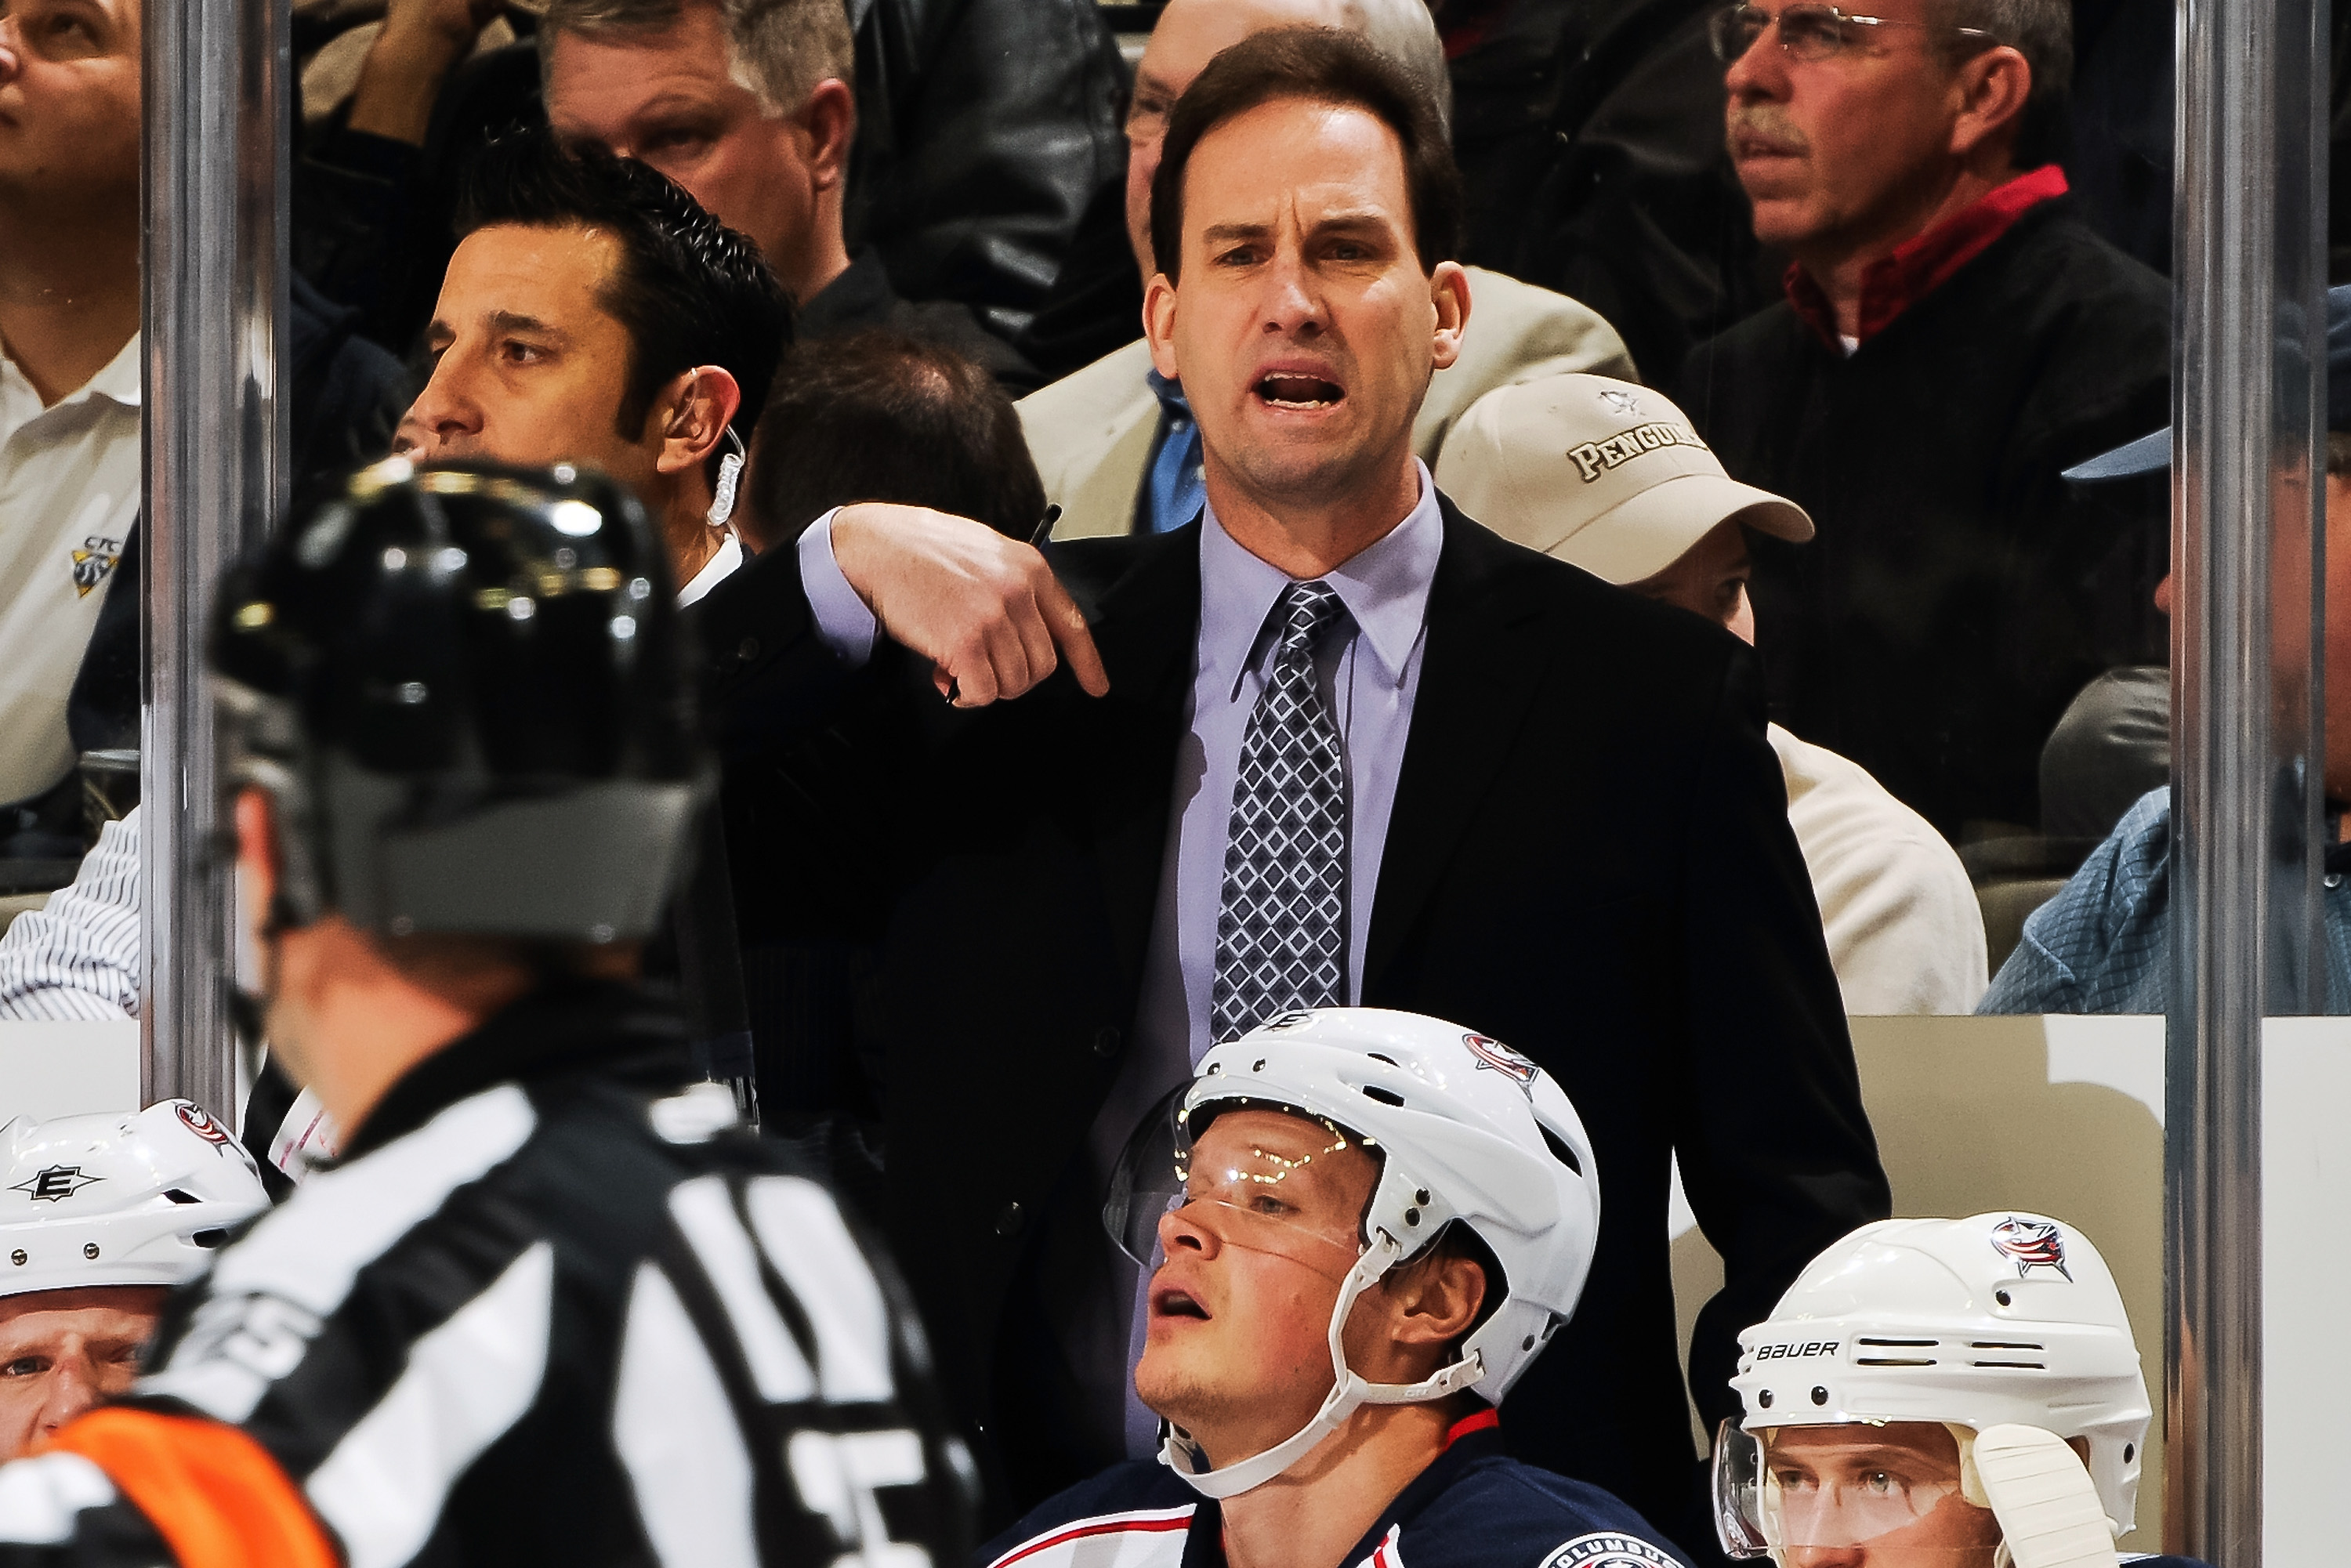 PITTSBURGH, PA - FEBRUARY 8:  Head Coach Scott Arniel of the Columbus Blue Jackets talks with a referee during a game against the Pittsburgh Penguins on February 8, 2011 at CONSOL Energy Center in Pittsburgh, Pennsylvania.  (Photo by Jamie Sabau/Getty Ima